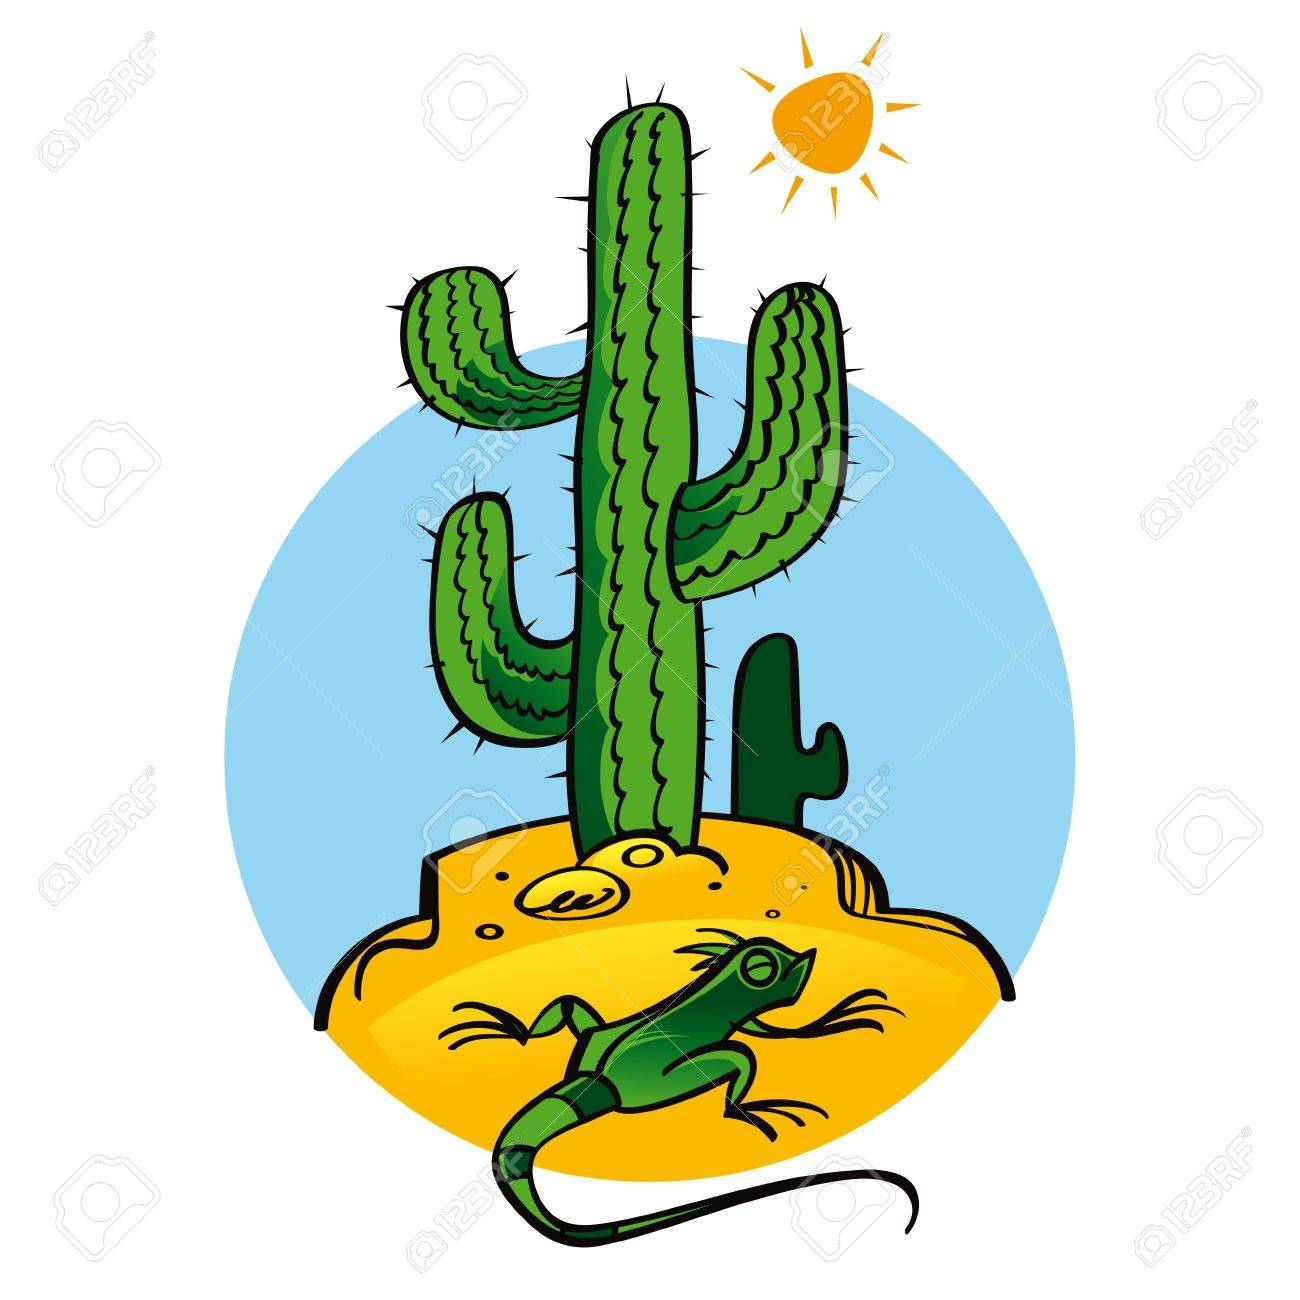 Cactus and Lizard nature plant reptile sun Stock Vector - 11852210